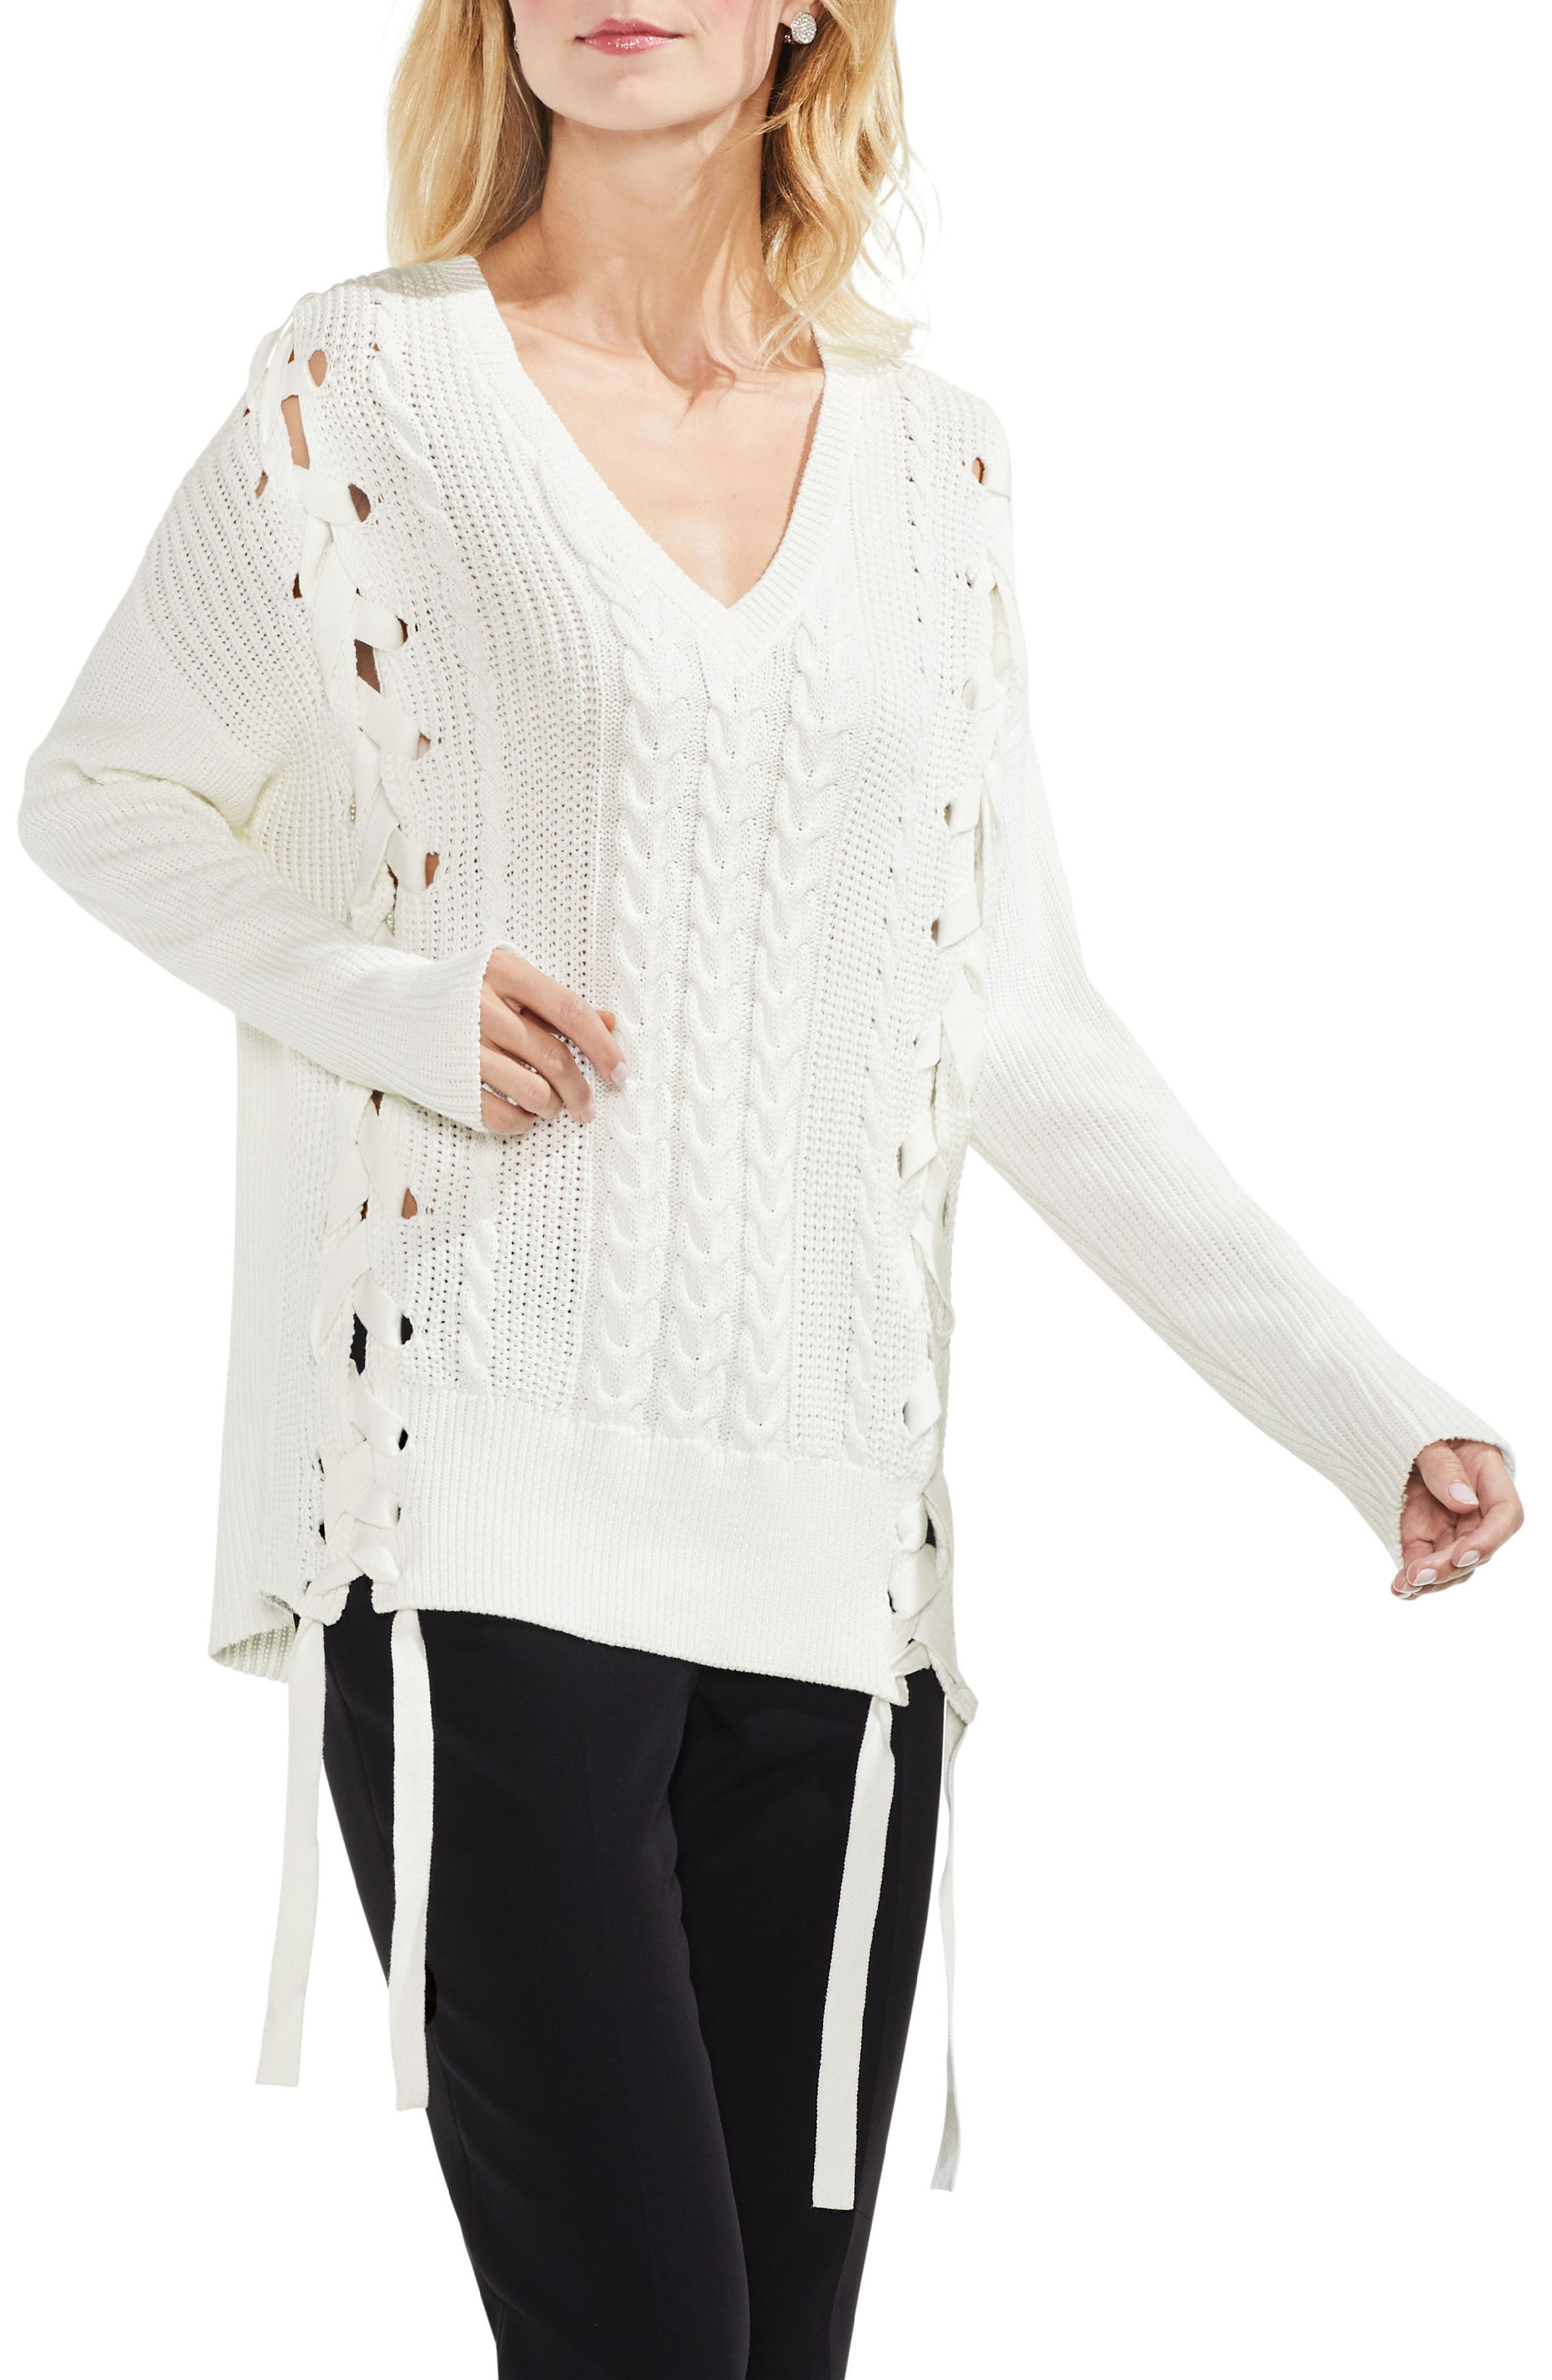 Alternate Image 1 Selected - Vince Camuto Lace-Up Cable Sweater